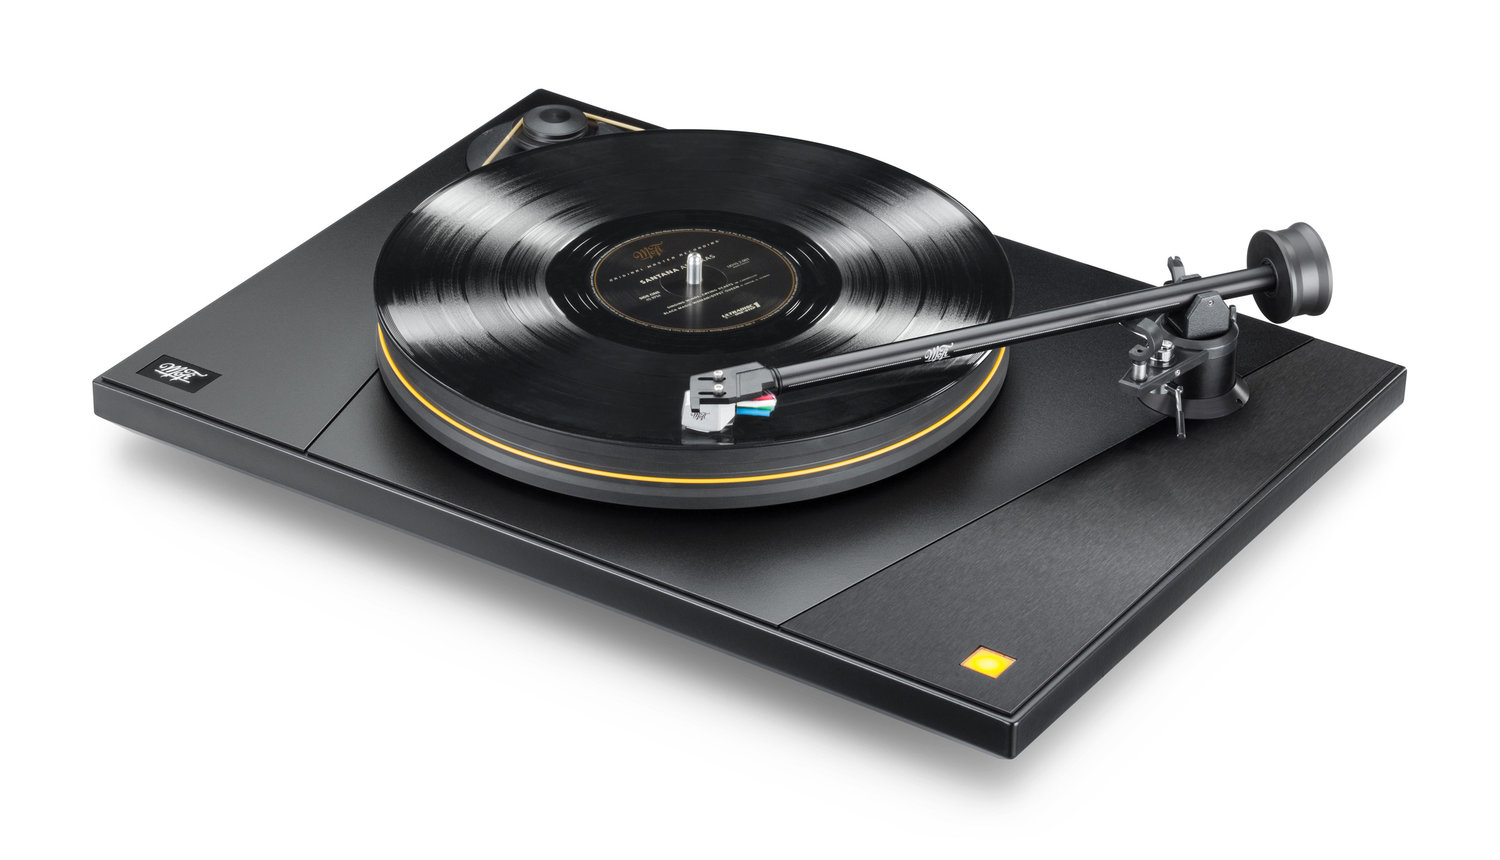 MoFi_Electronics_UltraDeck_Turntable_Angle_High_Left2.jpg